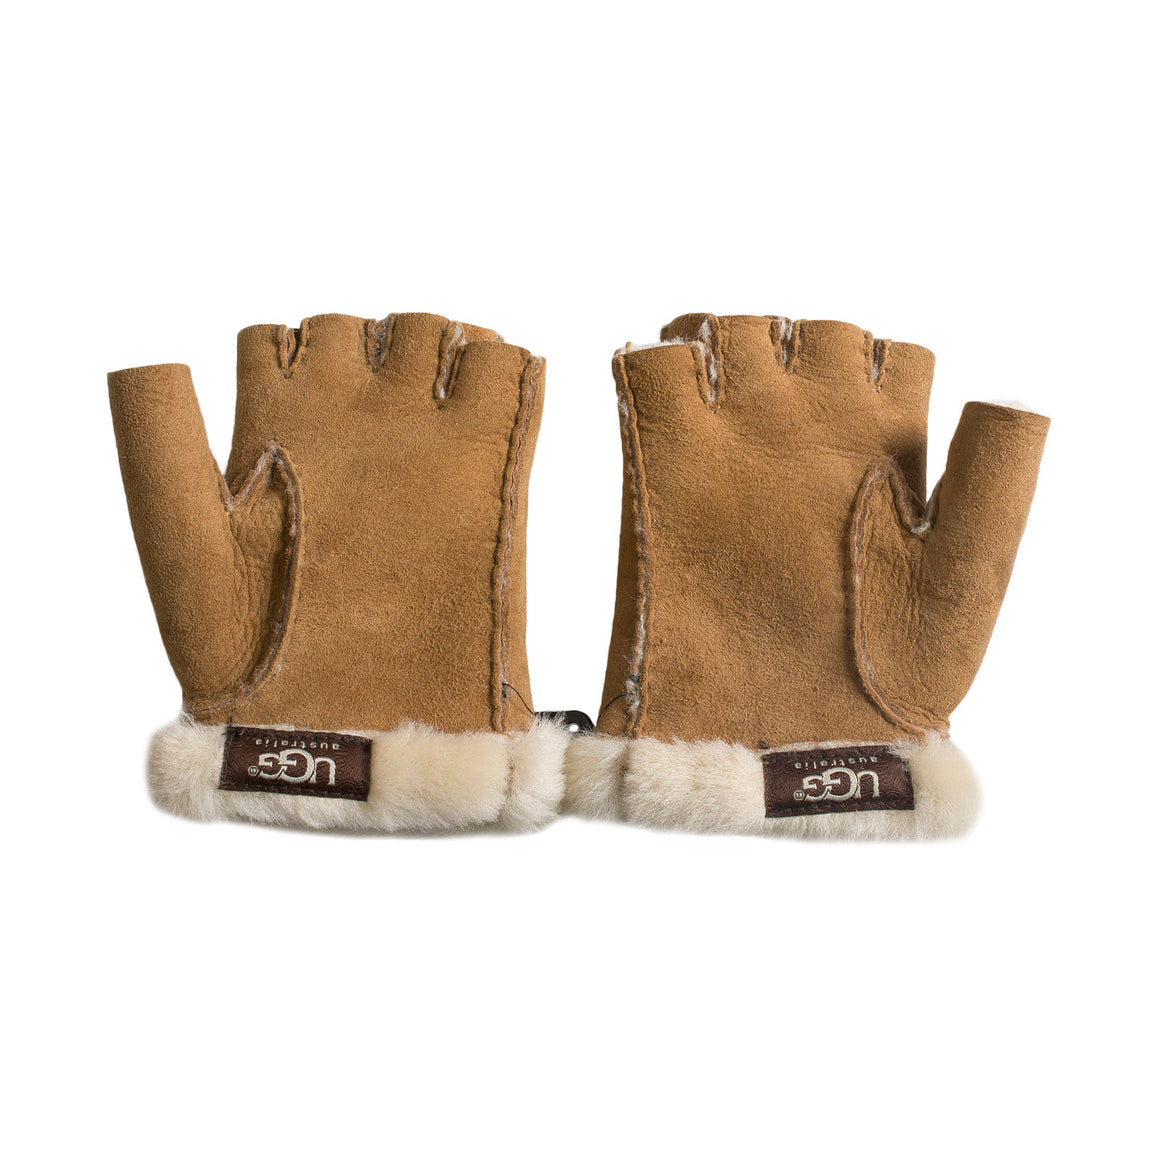 UGG Fingerless Shearling Chestnut Gloves - Women's